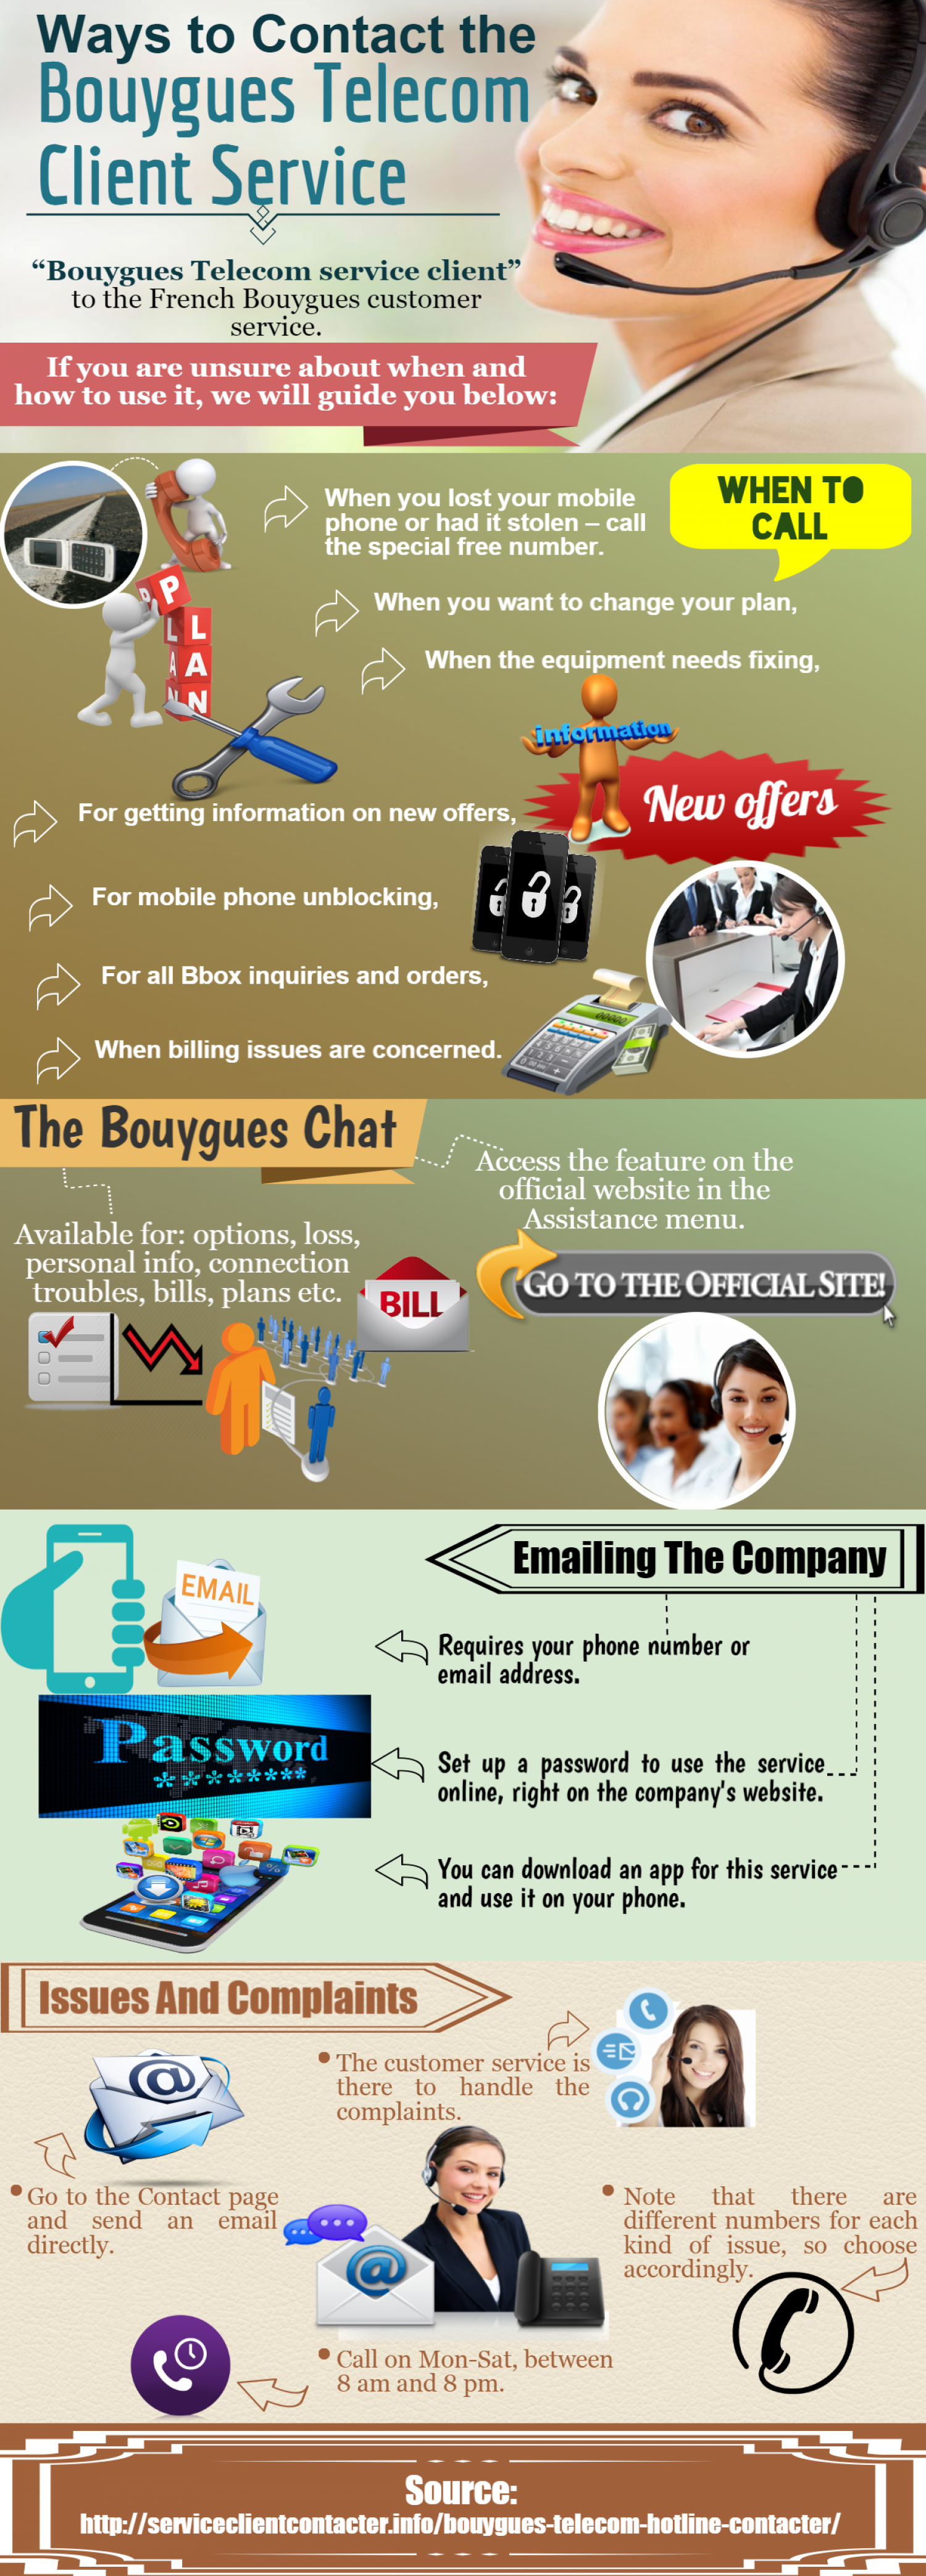 Ways To Contact The Bouygues Telecom Client Service Visual Ly